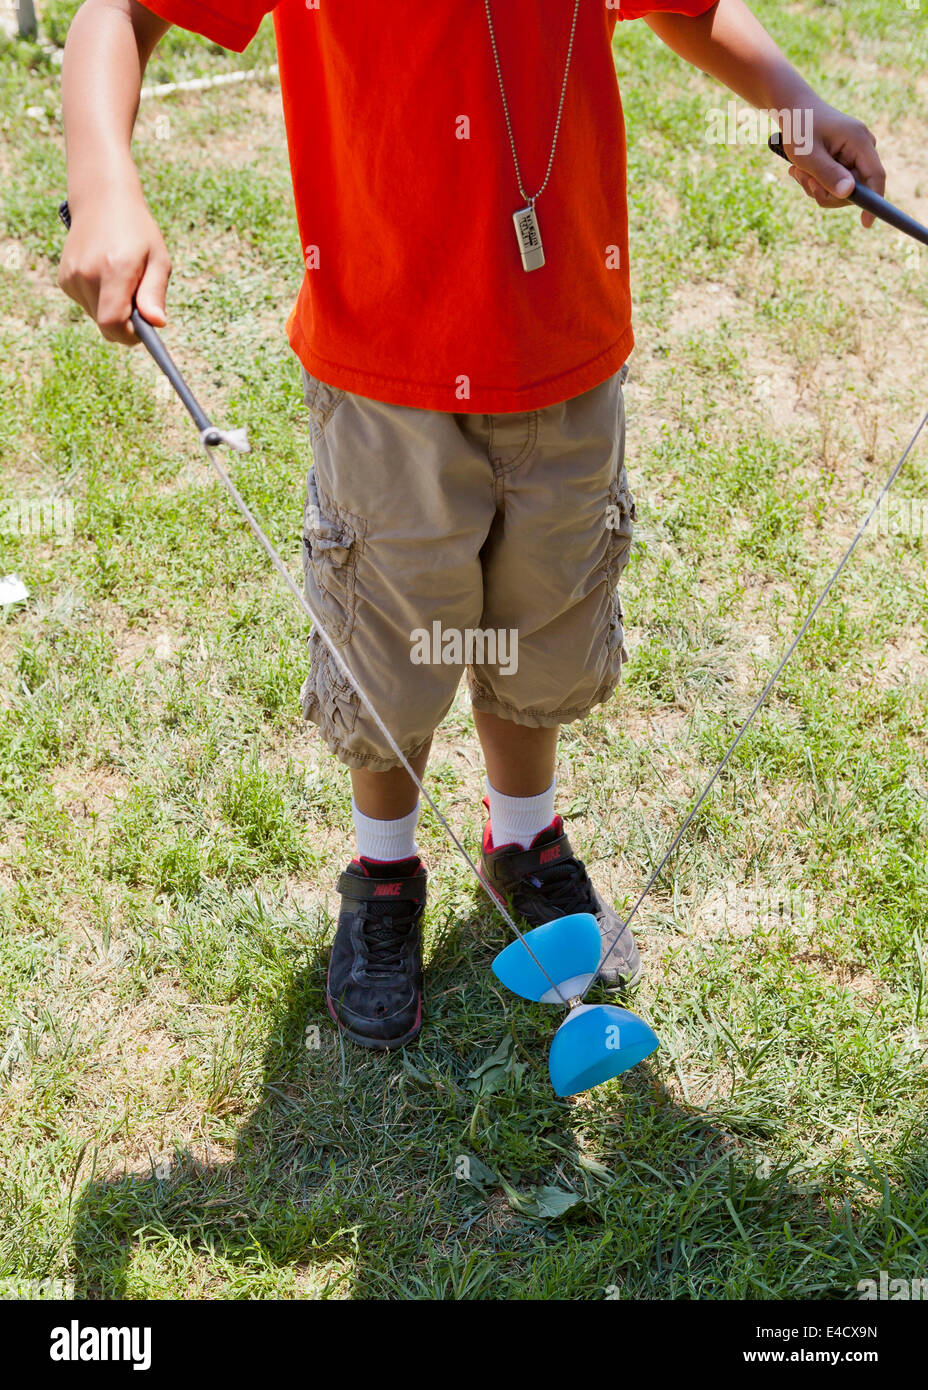 Child playing with diabolo juggling toy - USA - Stock Image